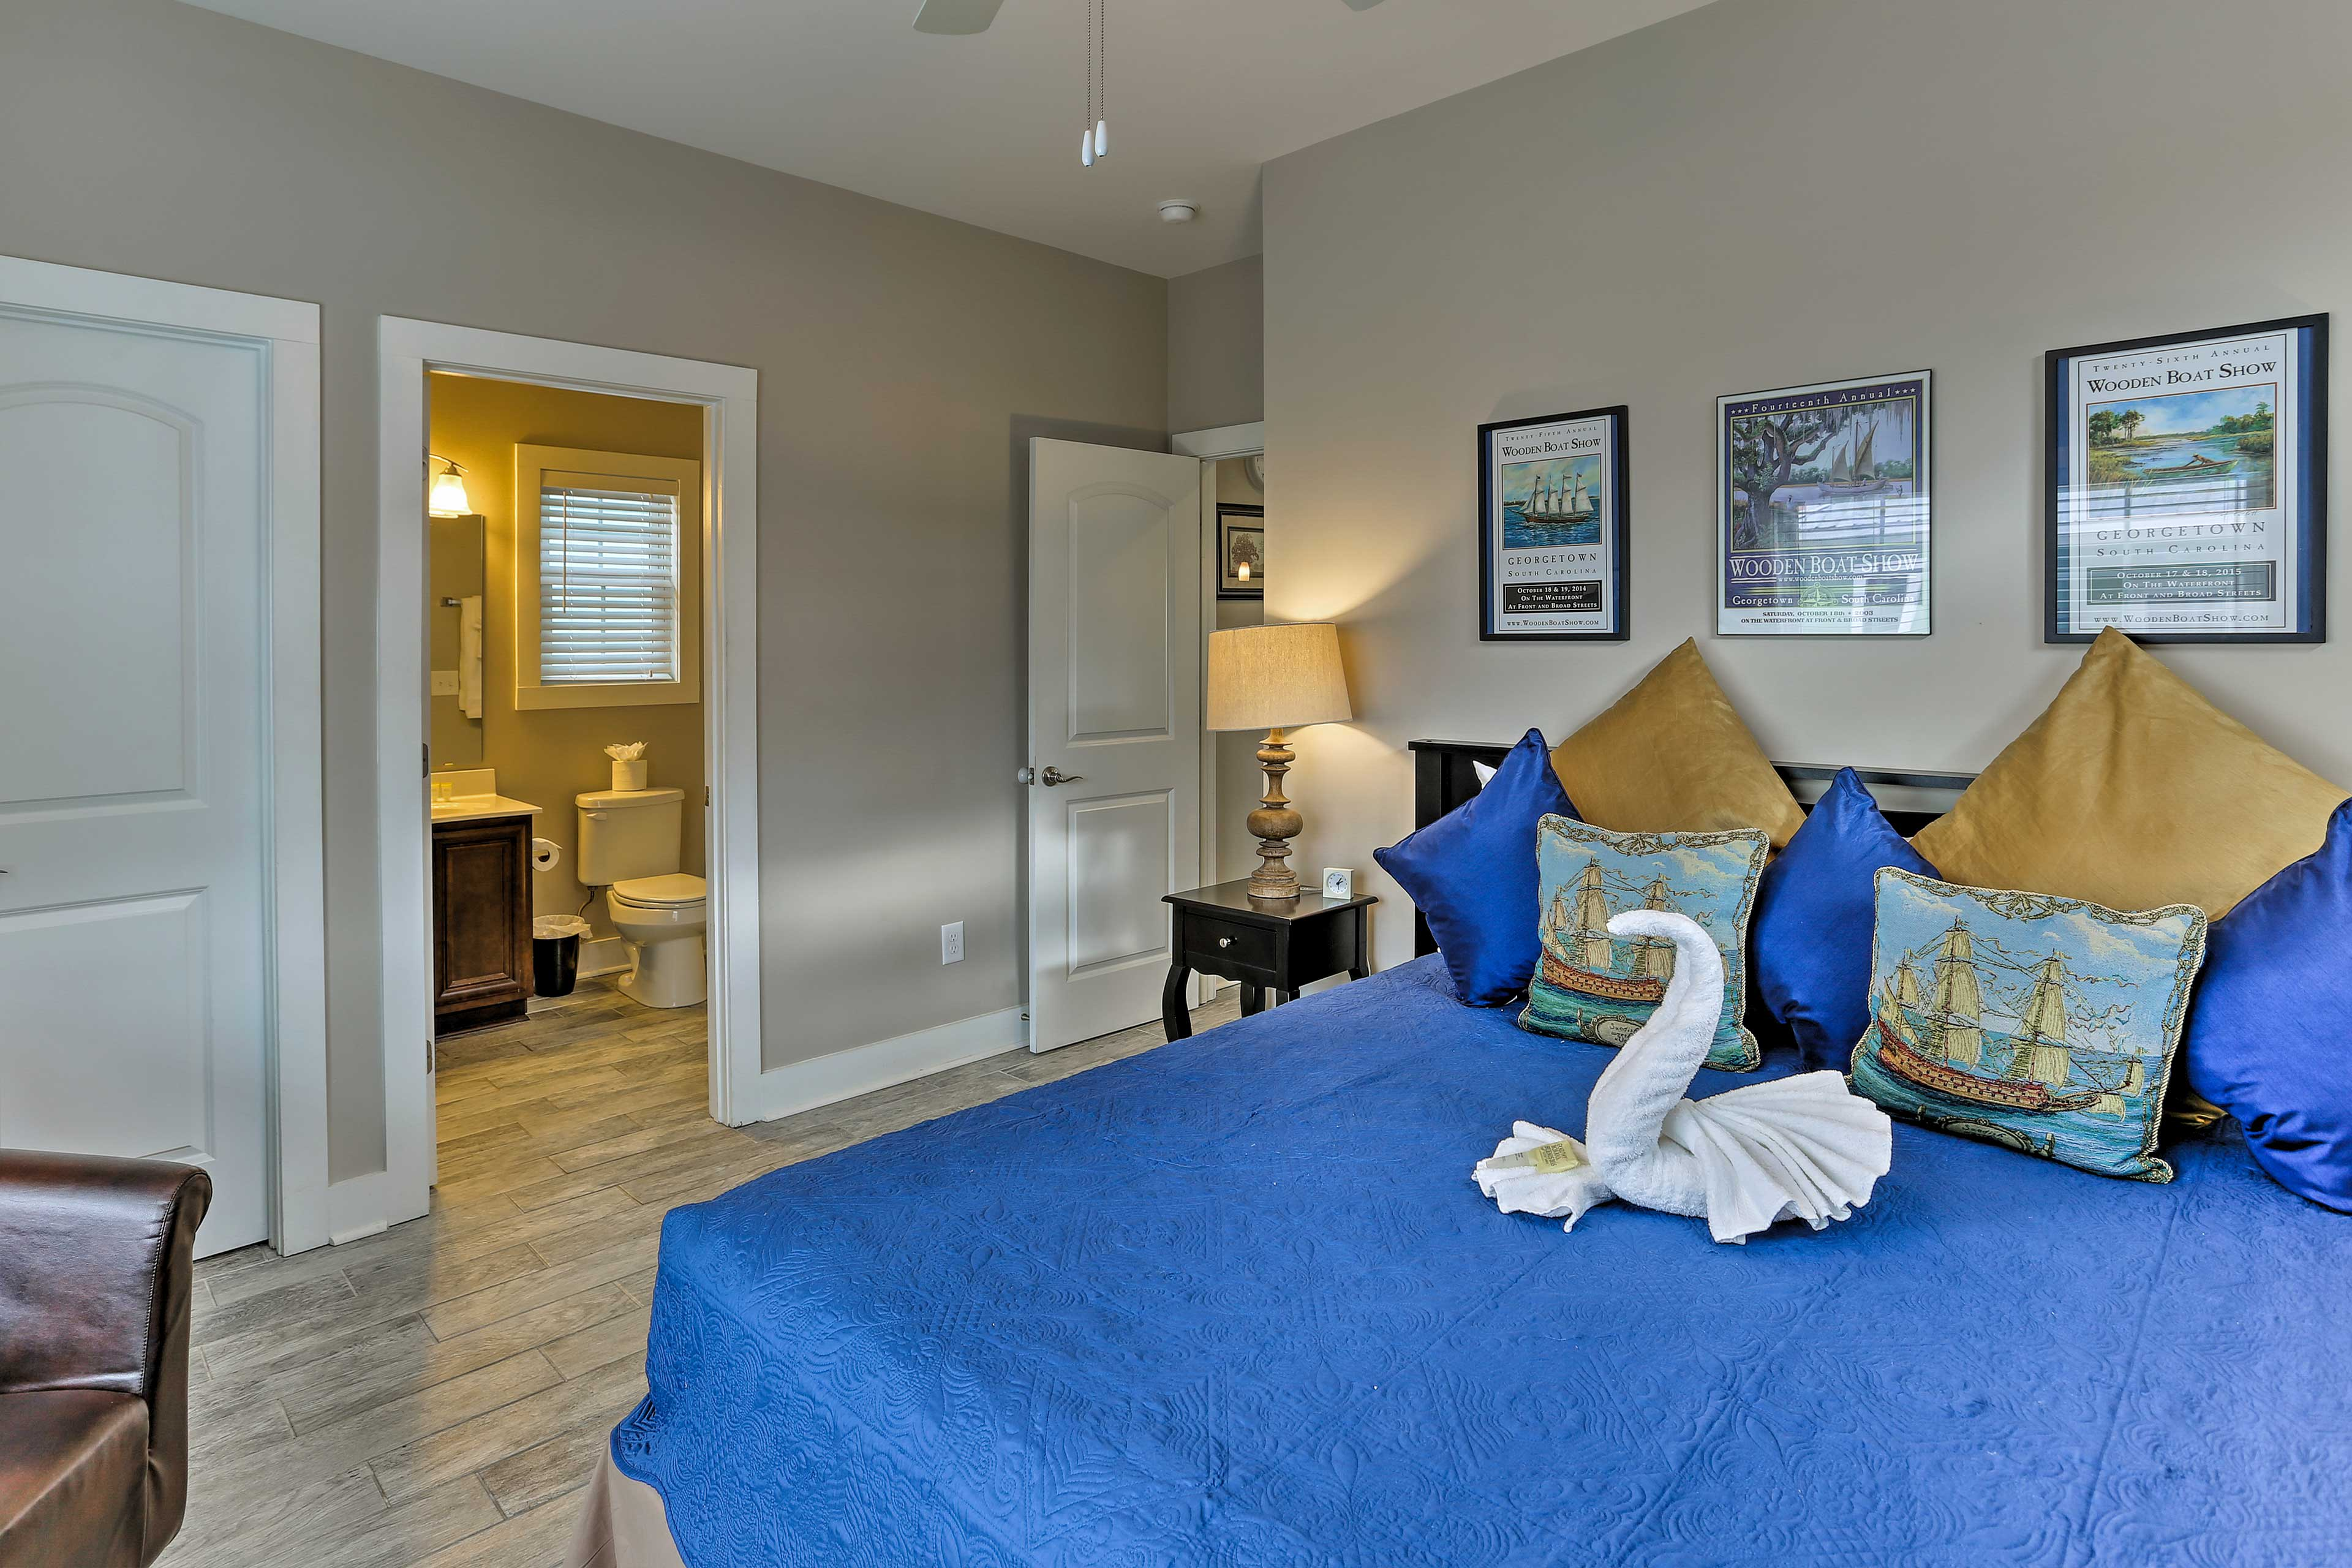 Retreat to one of the 4 bedrooms for a peaceful night's sleep.